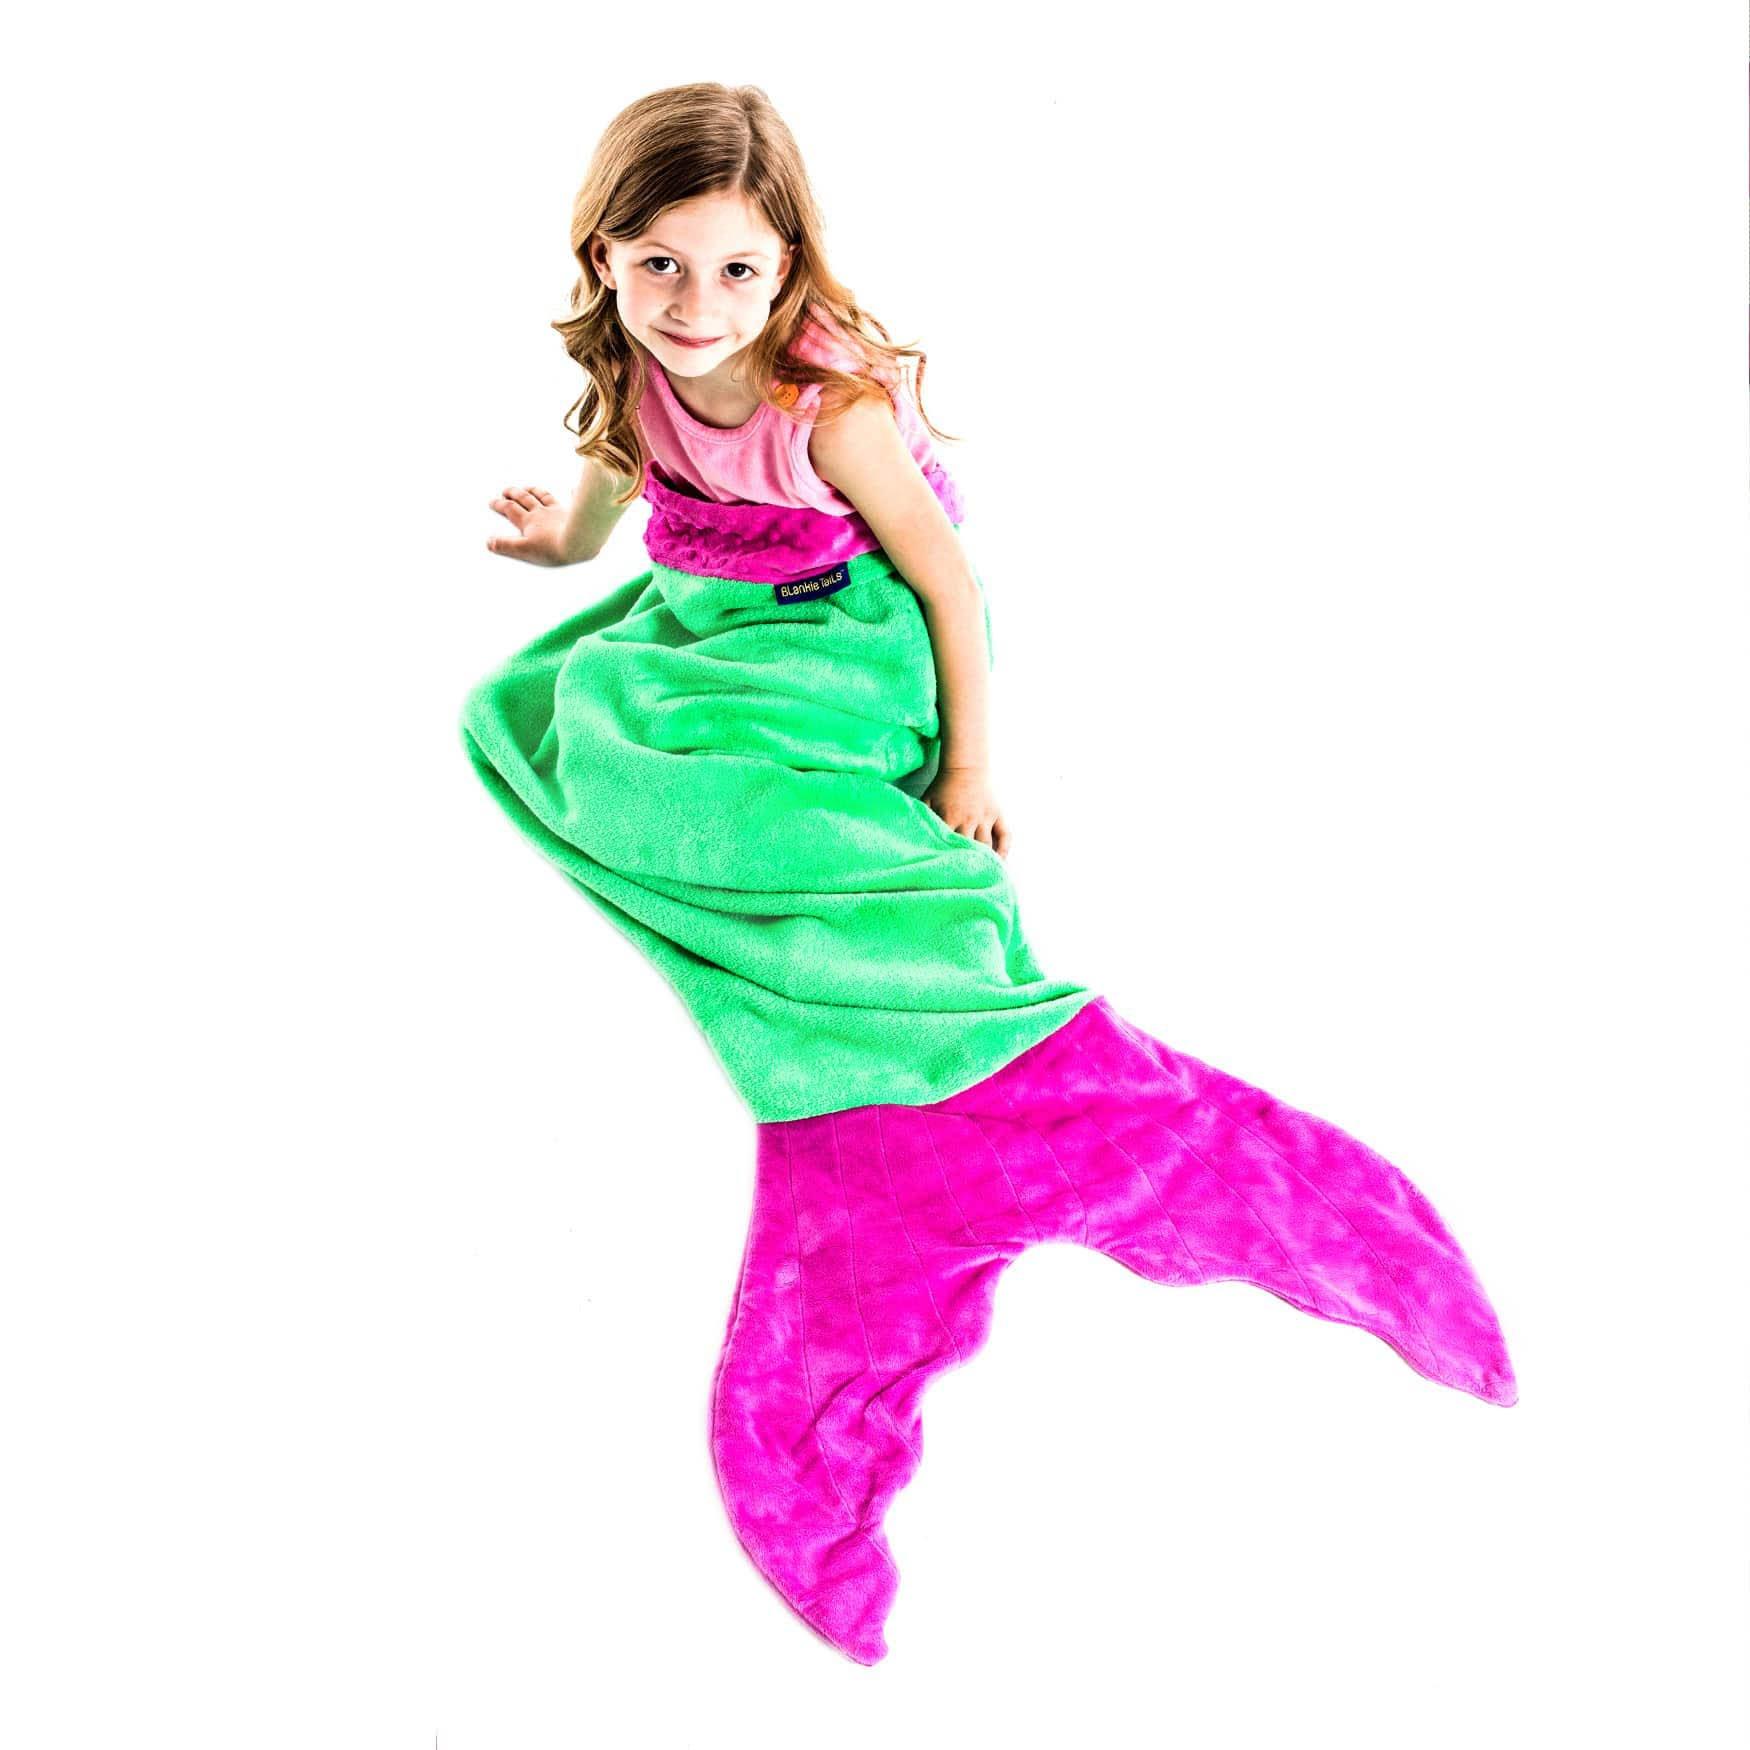 The Original Blankie Tails Mermaid Tail Blanket (Youth Size), Green/Pink